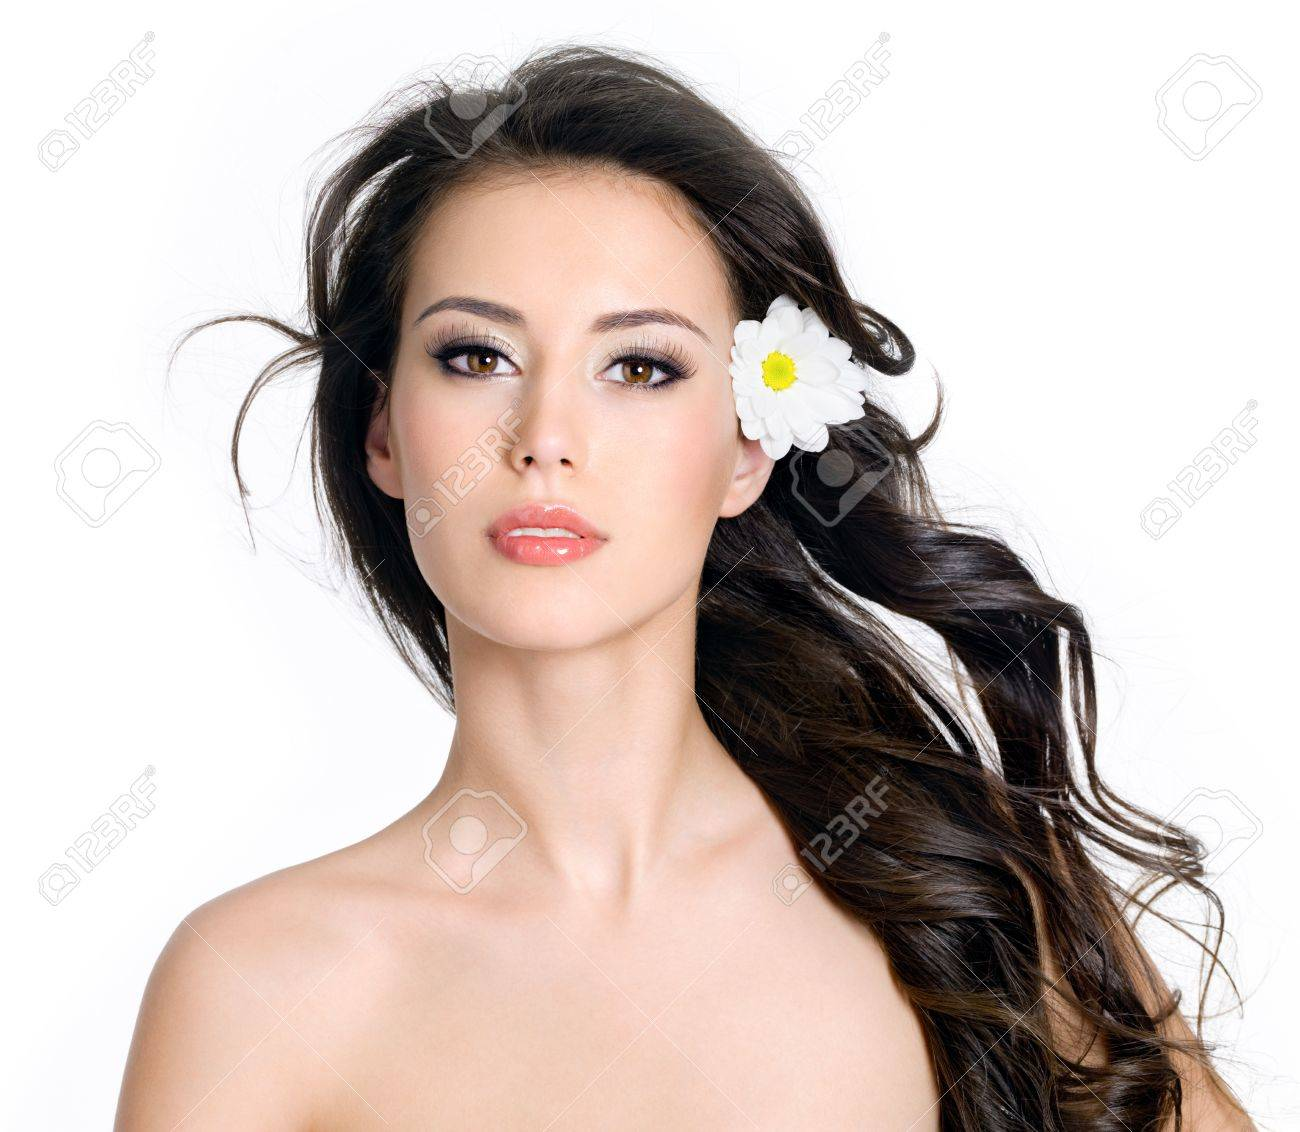 Beautiful sensuality glamour woman with clean skin and flowers in her long hair - white background Stock Photo - 9002547